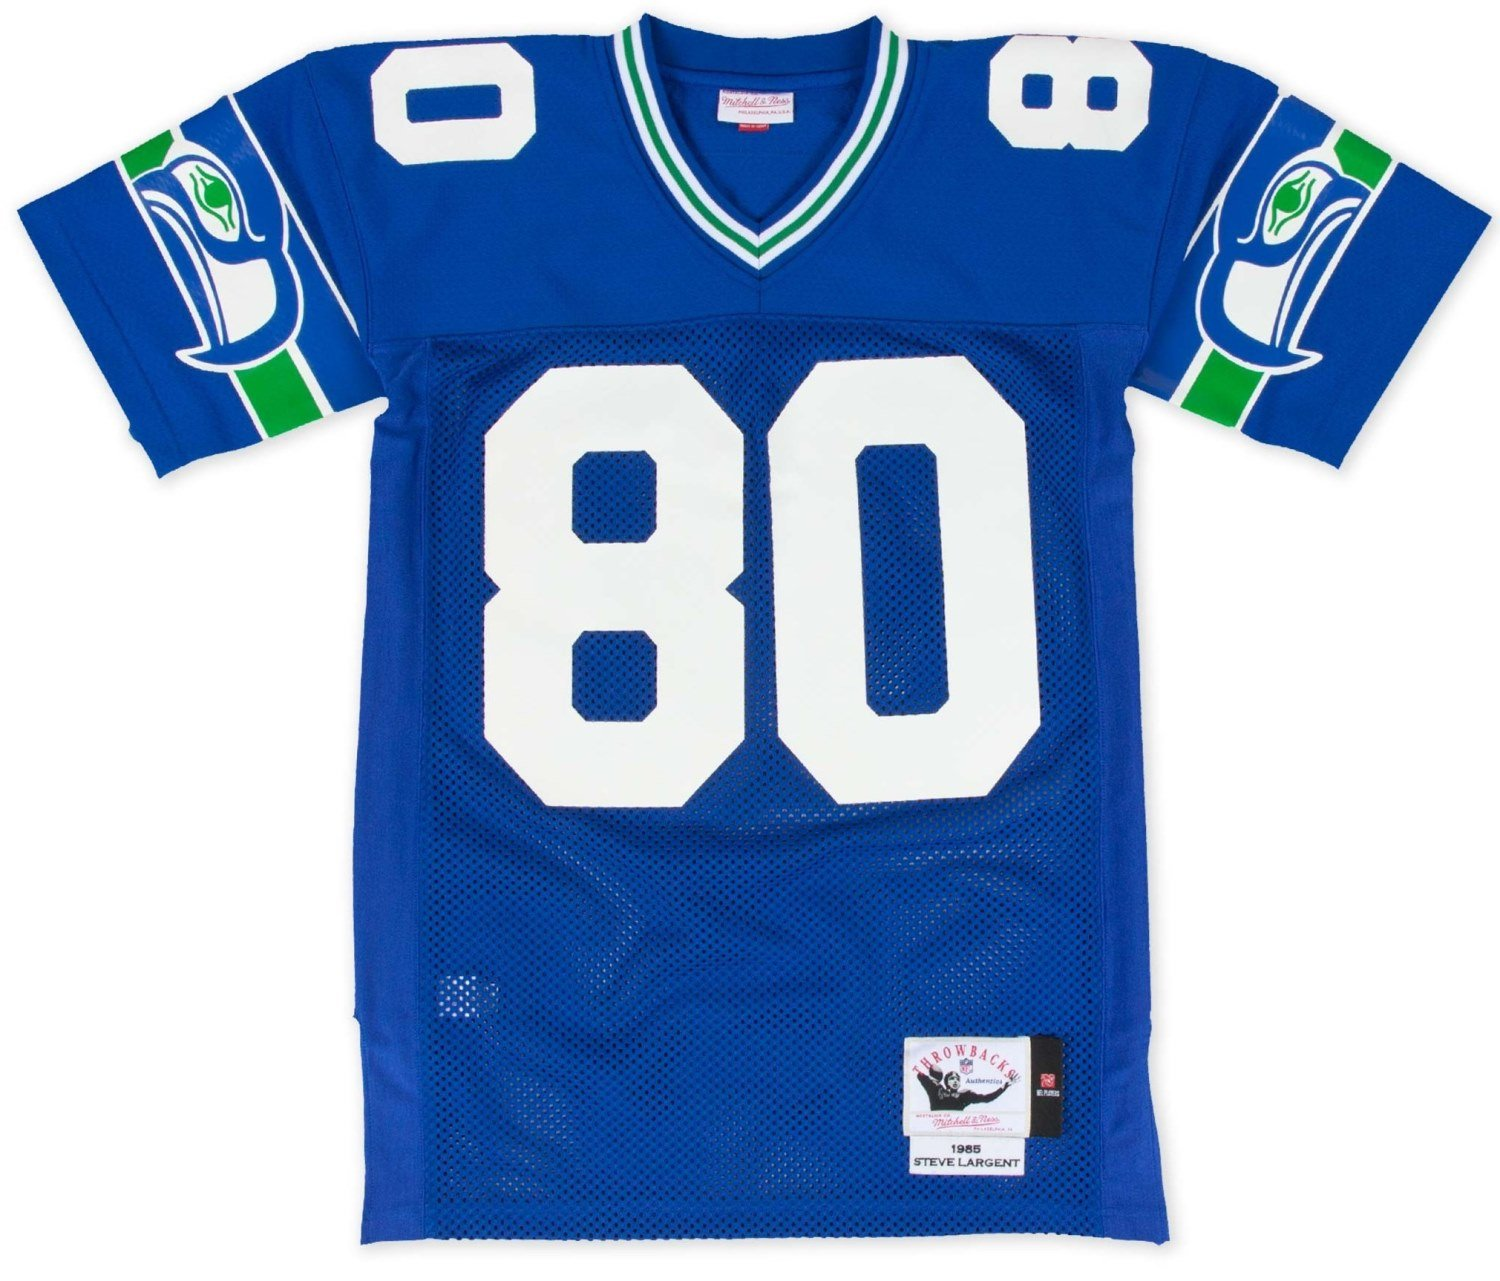 new product b0659 9dde7 Mitchell & Ness Steve Largent Seattle Seahawks Authentic 1985 Blue NFL  Jersey